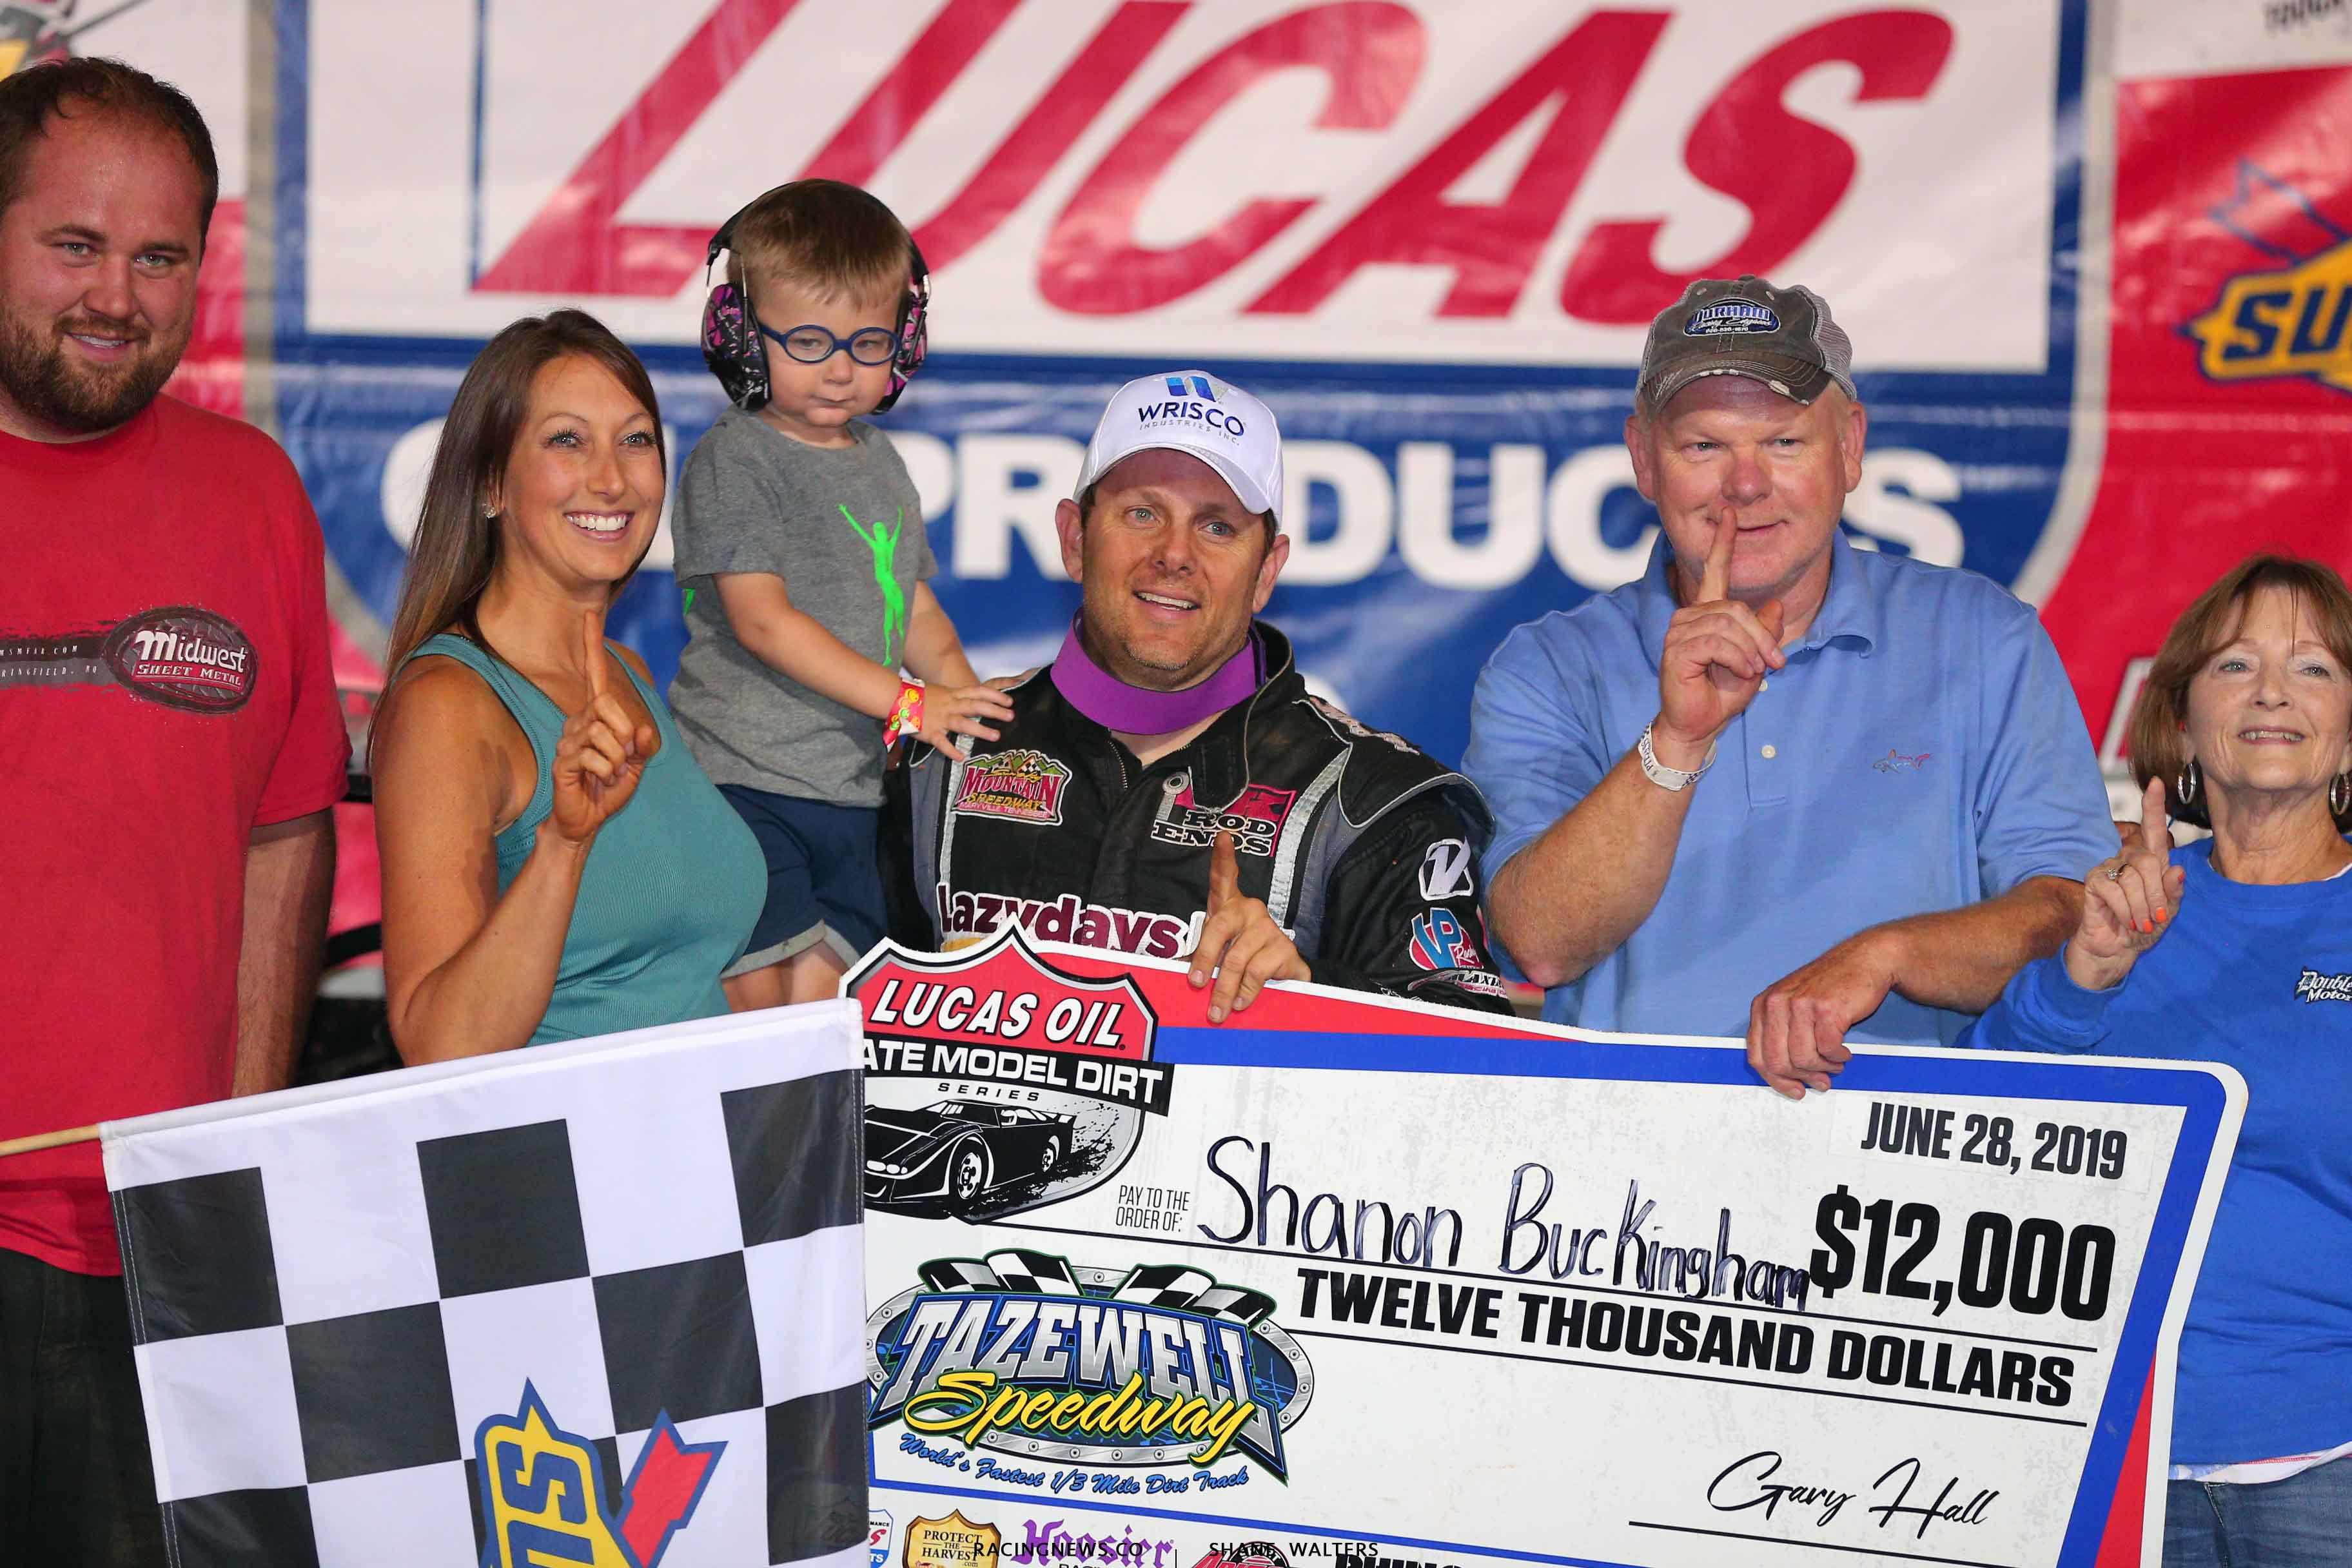 Shanon Buckingham and family in victory lane at Tazewell Speedway 6752